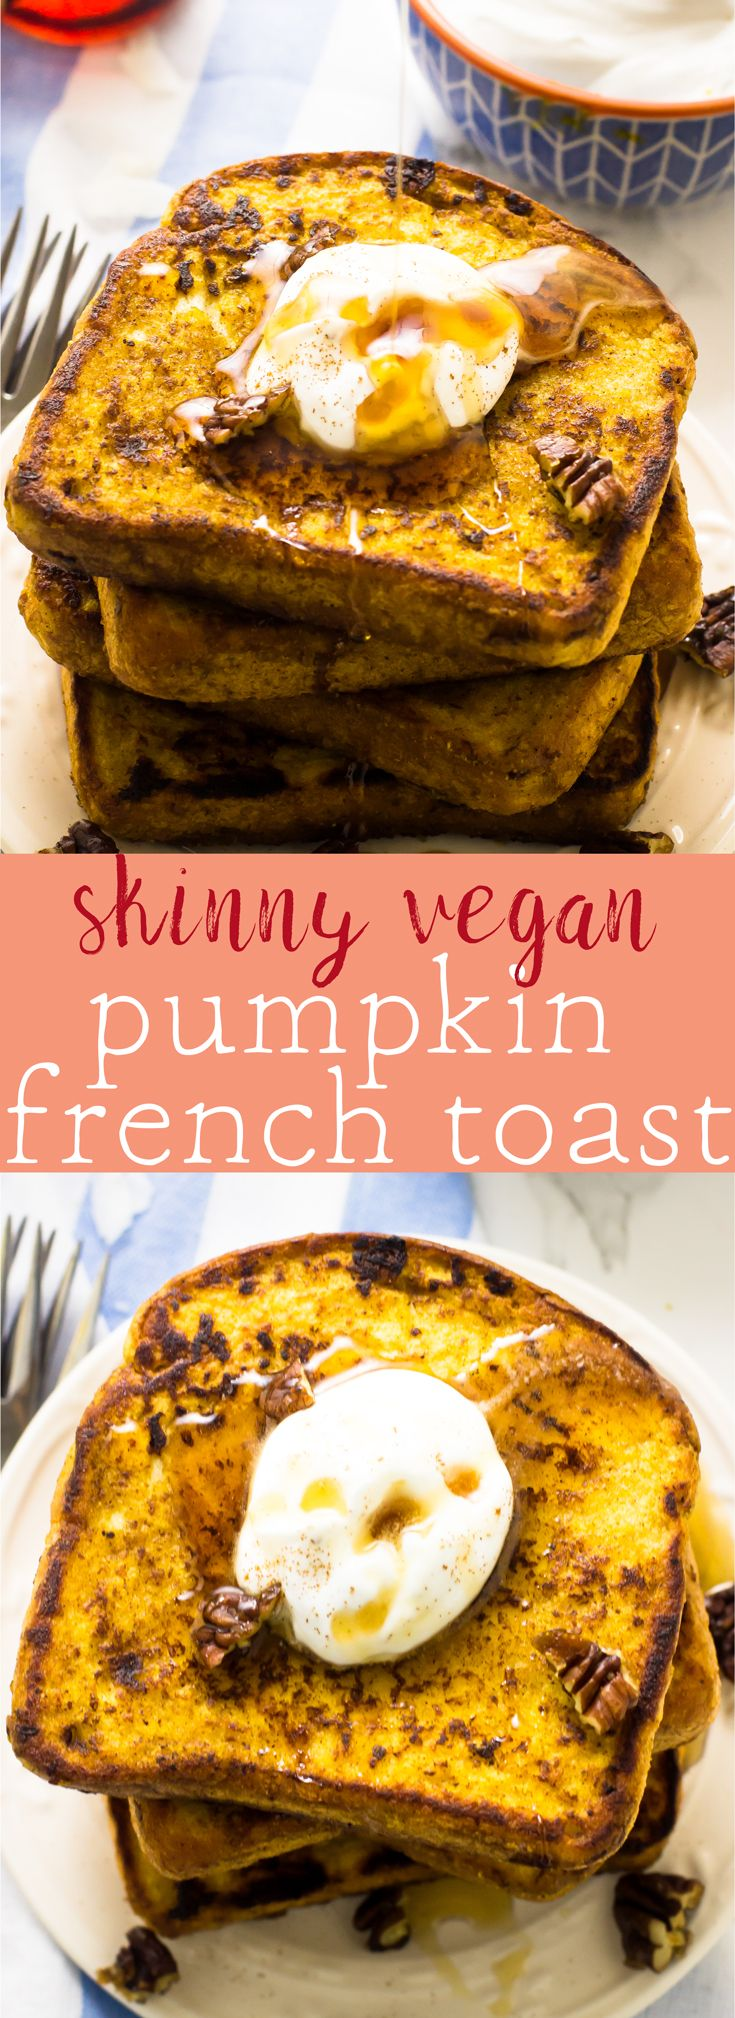 IDEA Health and Fitness Association: Vegan Pumpkin French Toast - Jessica In The Kitche...